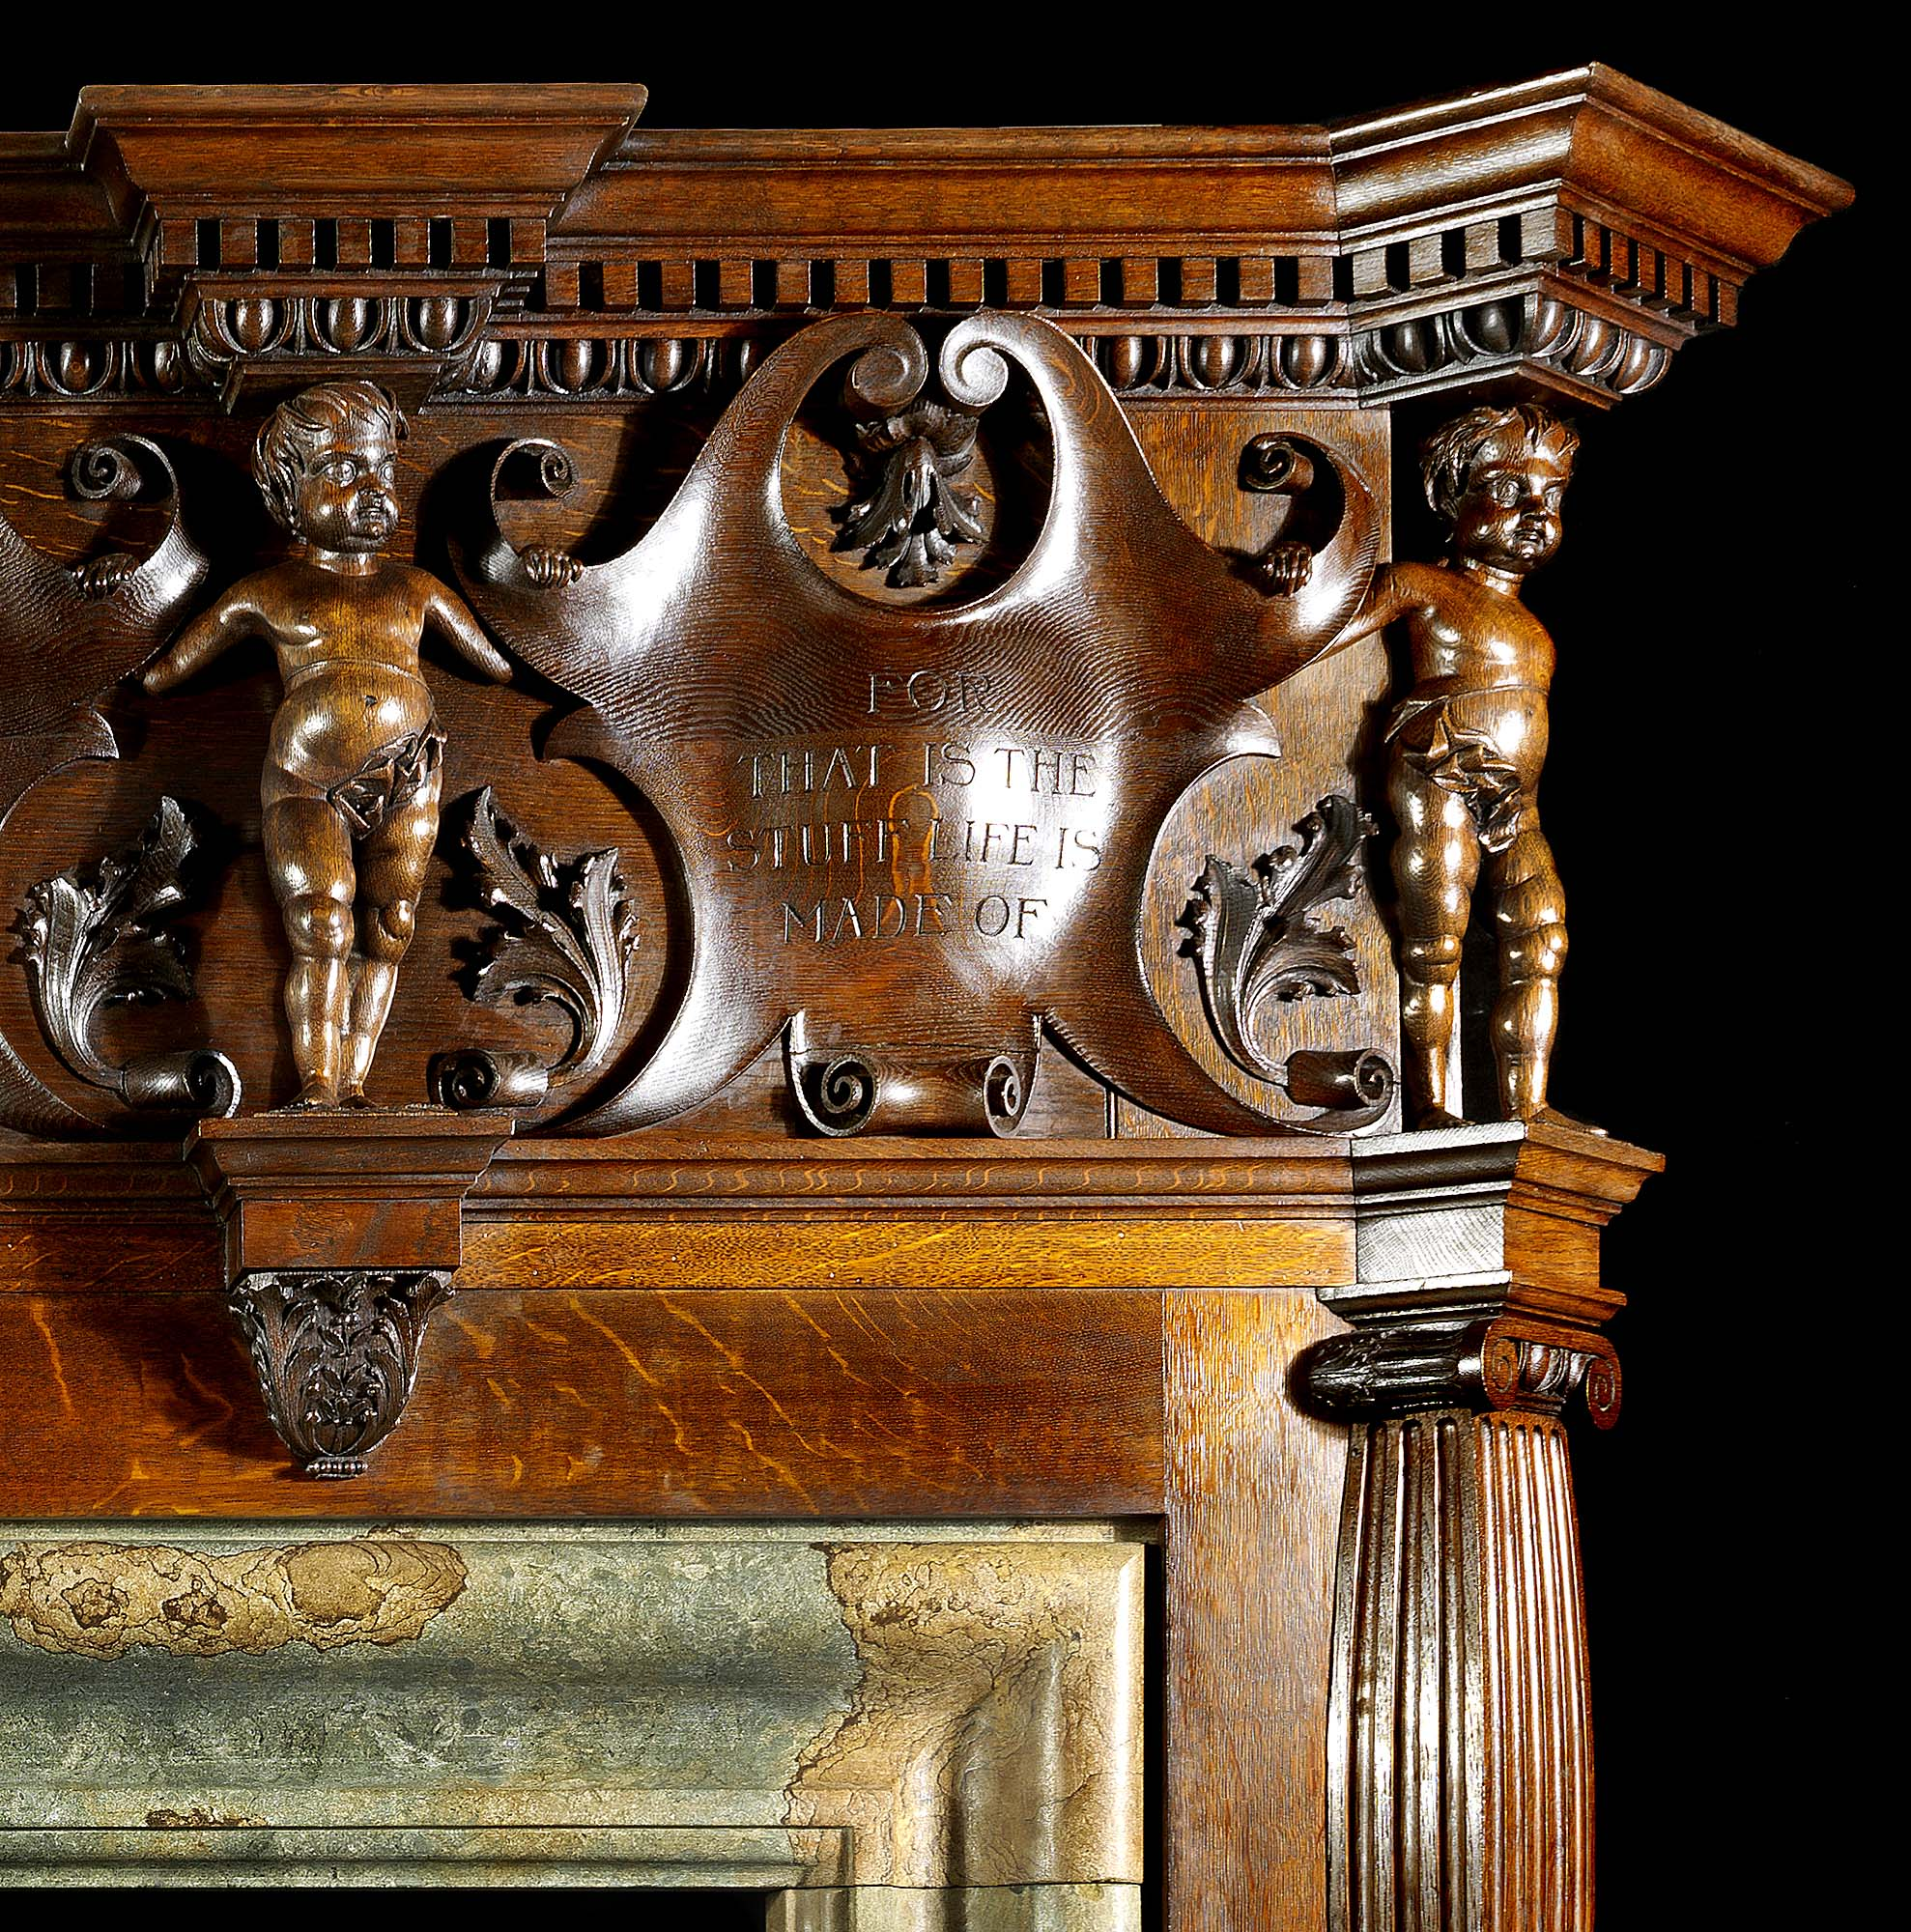 A large English Oak fireplace mantel